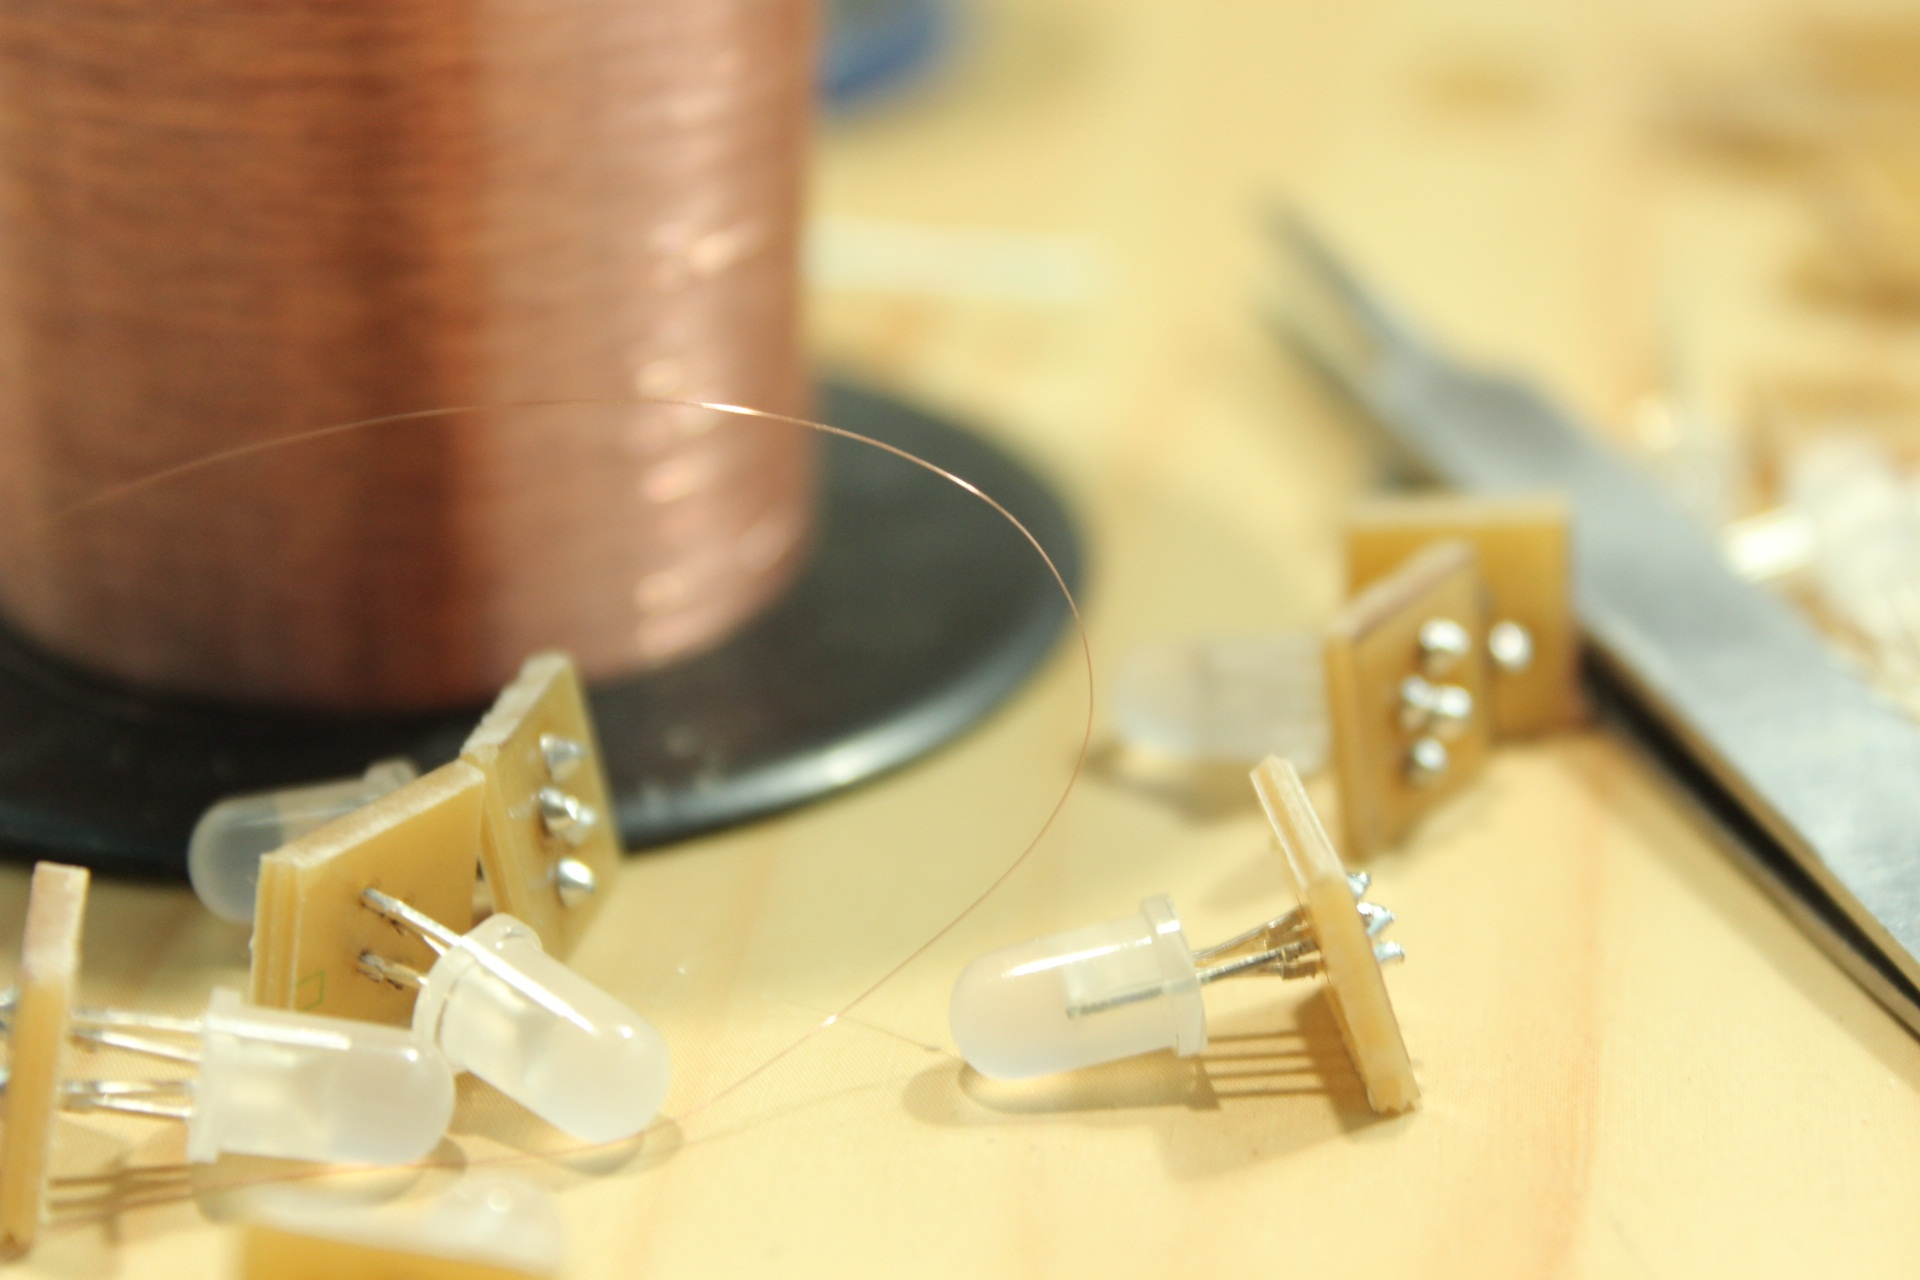 Picture of LEDs Soldering